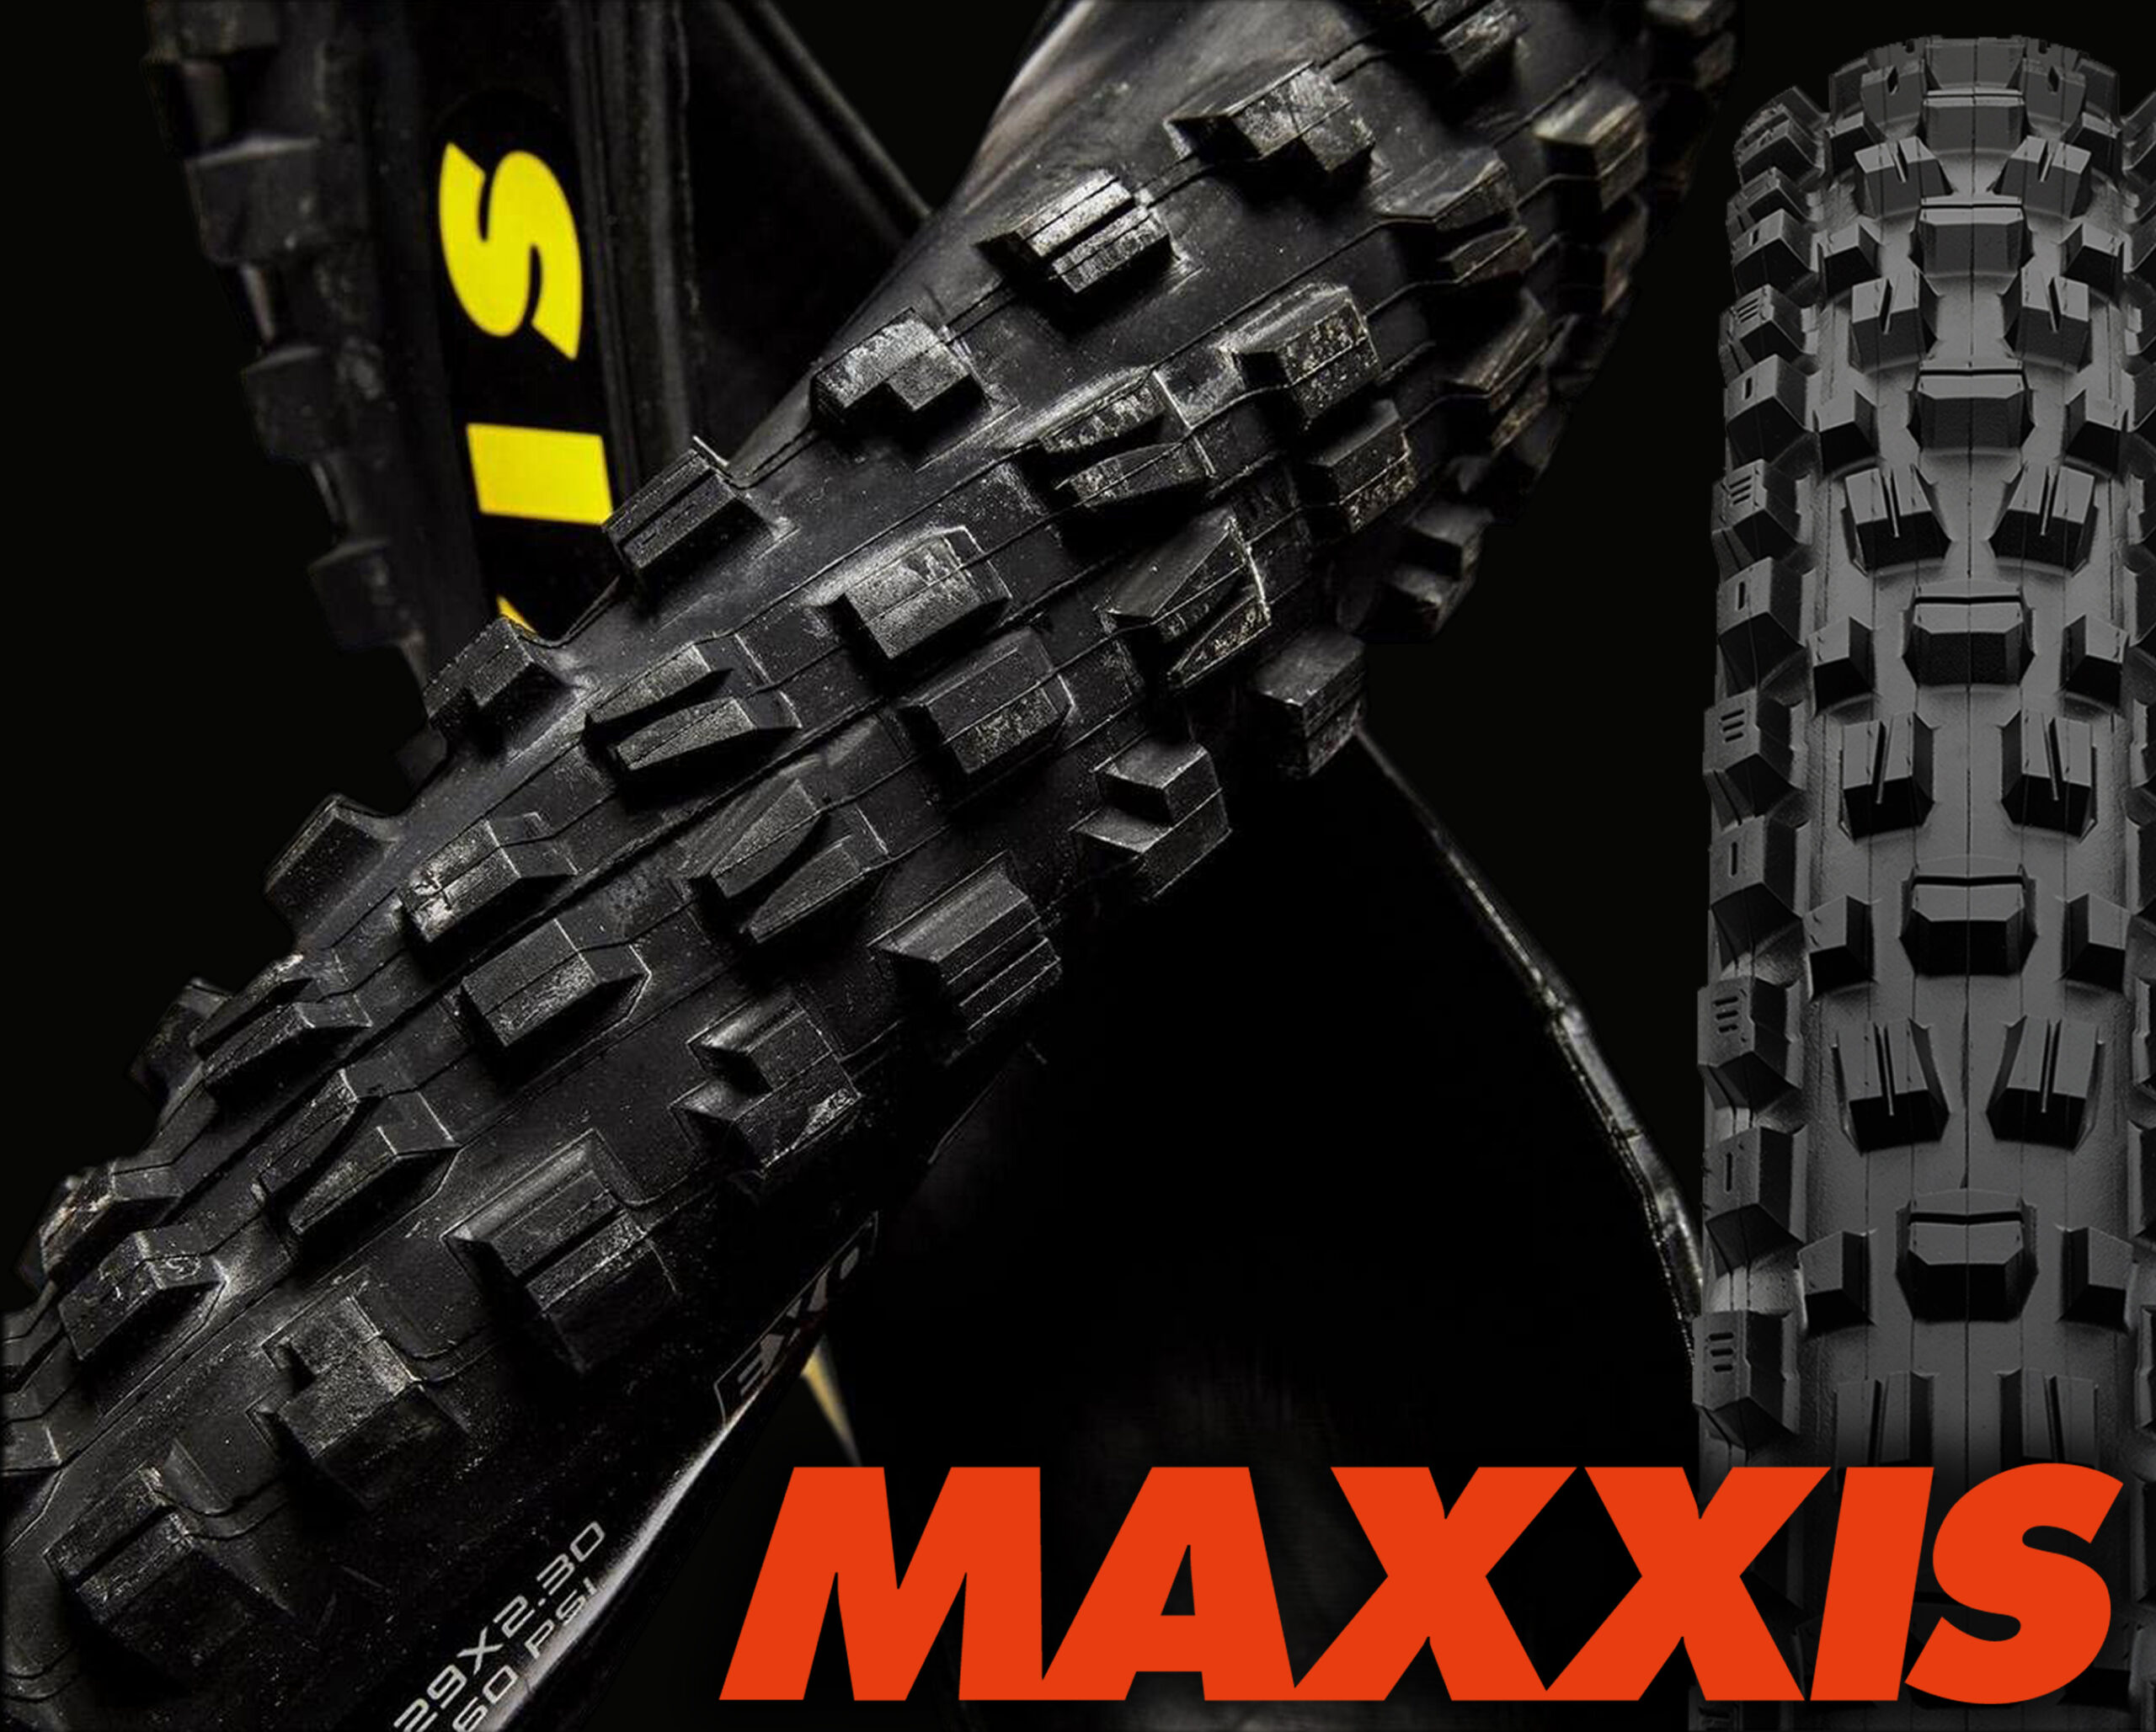 maxxis banner sajt 1 scaled